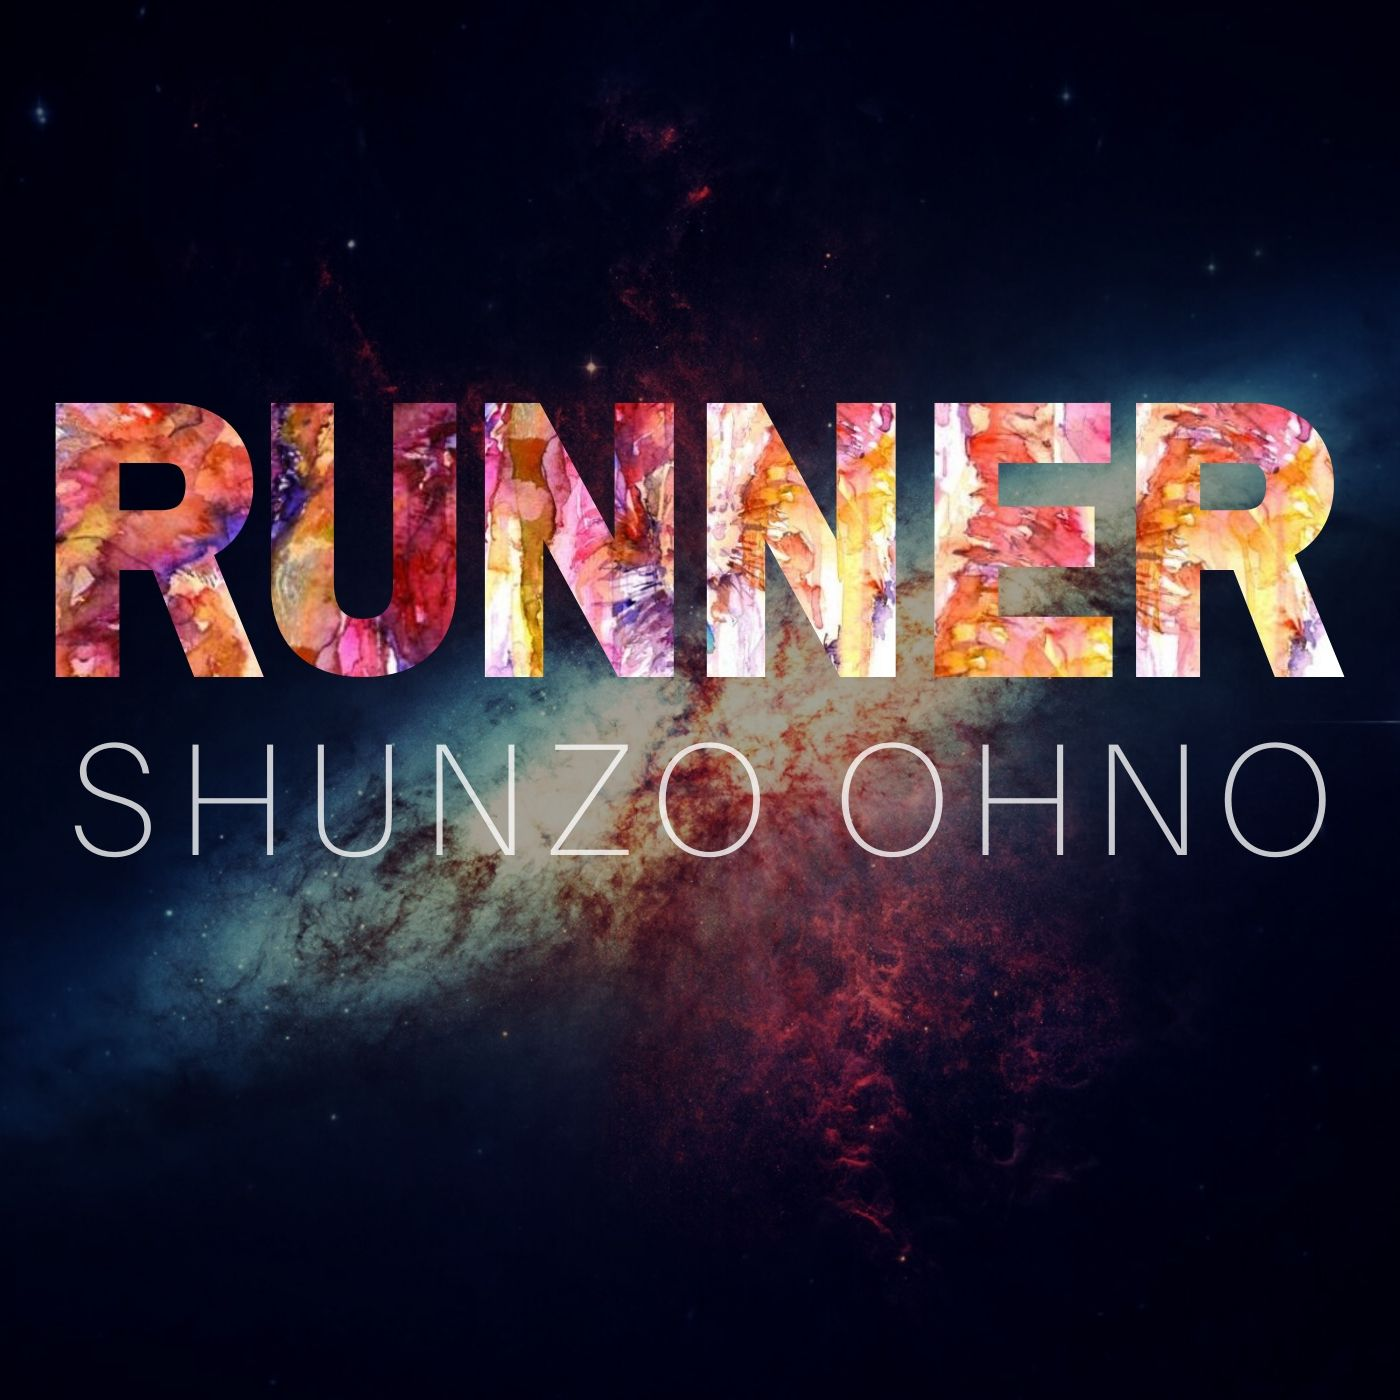 NEW RELEASE: Shunzo Ohno's RUNNER is out April 3rd, 2020